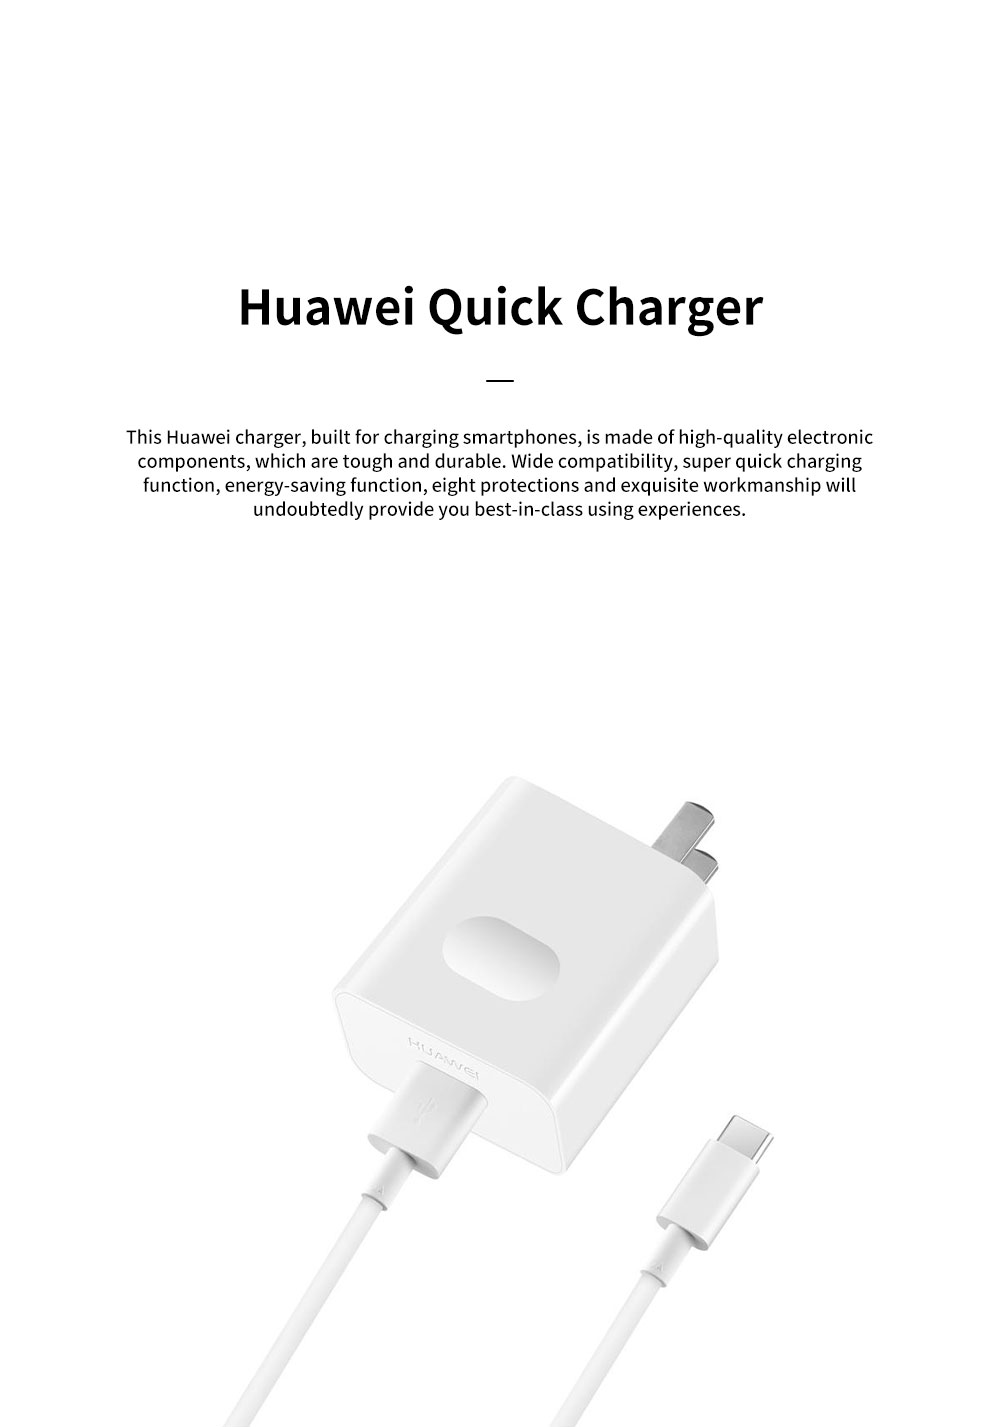 Light Portable Super Quick Charging Wide Compatibility Original Huawei Charger with 8 Protections 6-Level Energy Efficiency Standard 0